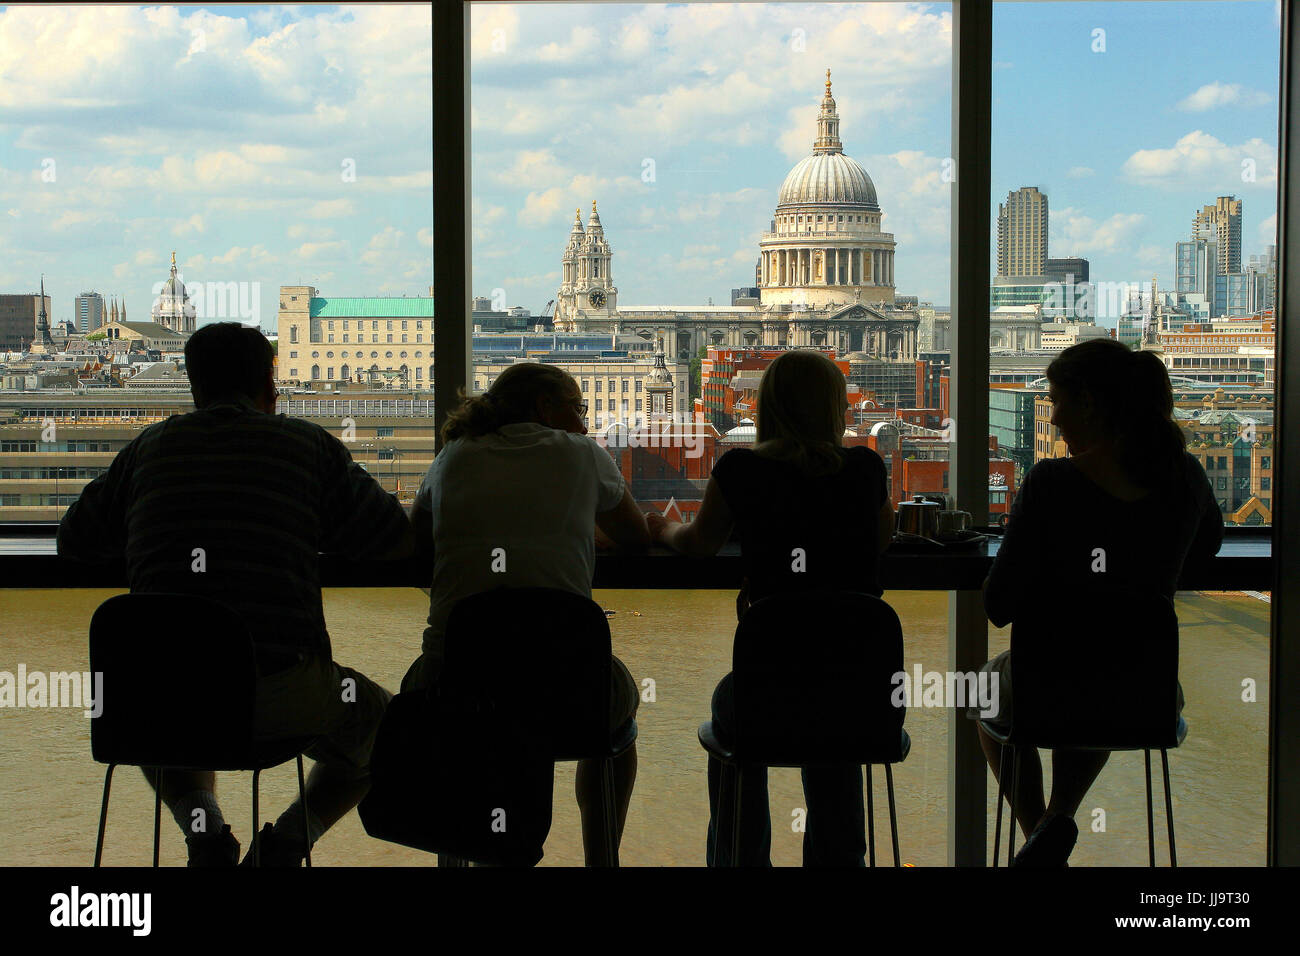 Rear view shot of tourists looking through window at view of St Paul's Cathedral, London, England, UK - Stock Image